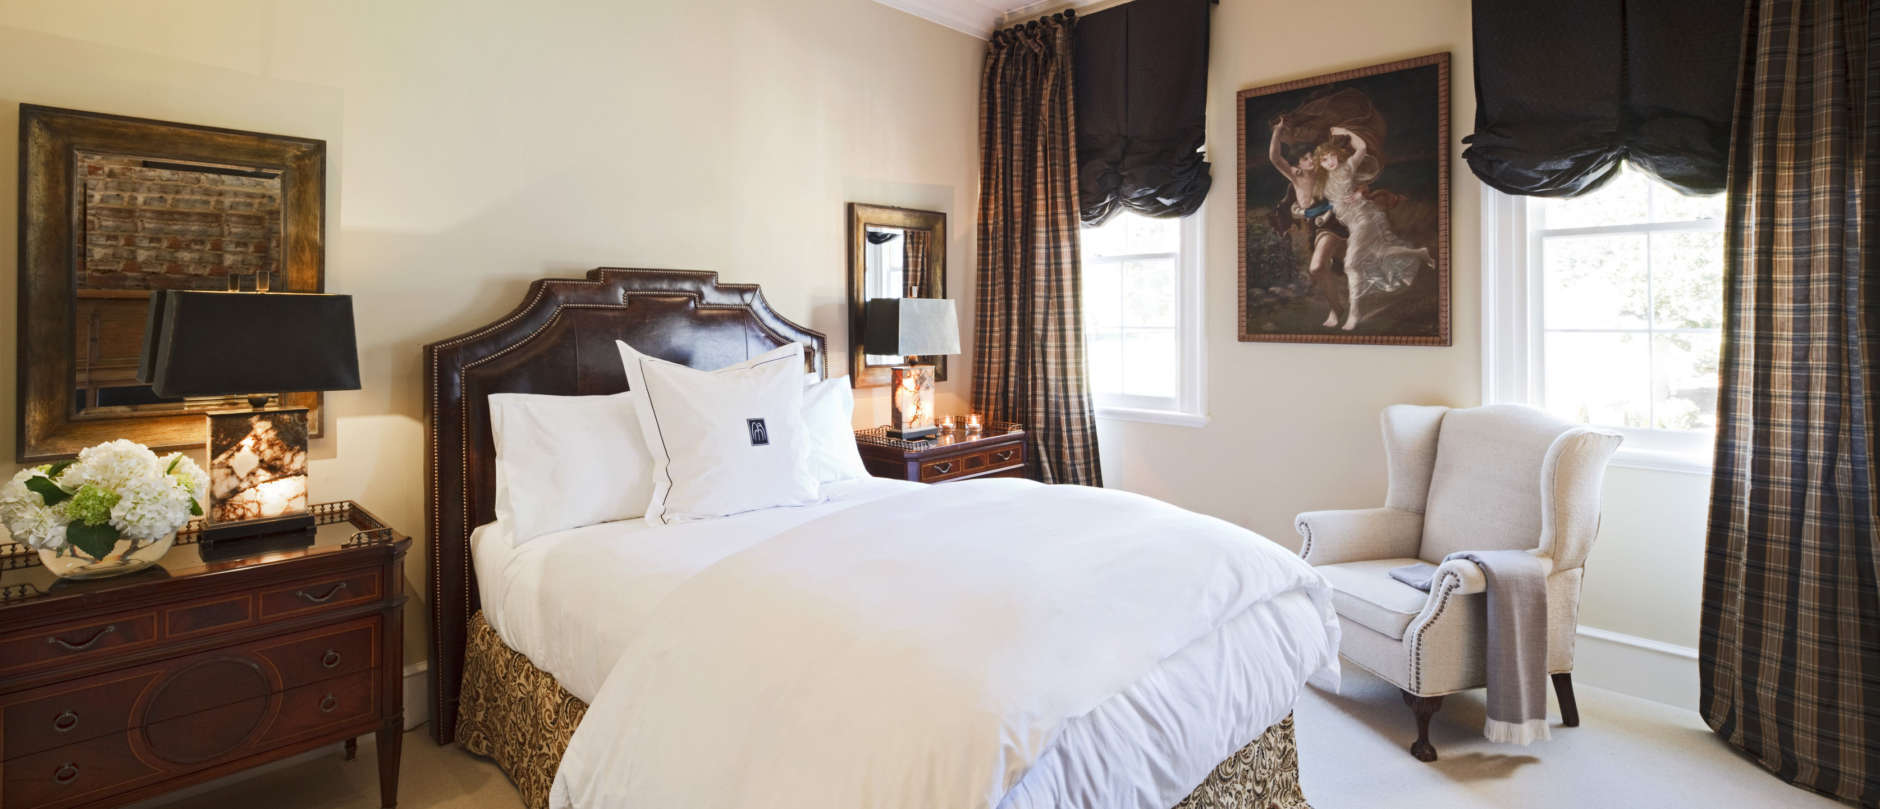 The Inn at Willow Grove is located in Orange, Virginia, just a little under two hours from D.C. (Courtesy The Inn at Willow Grove)